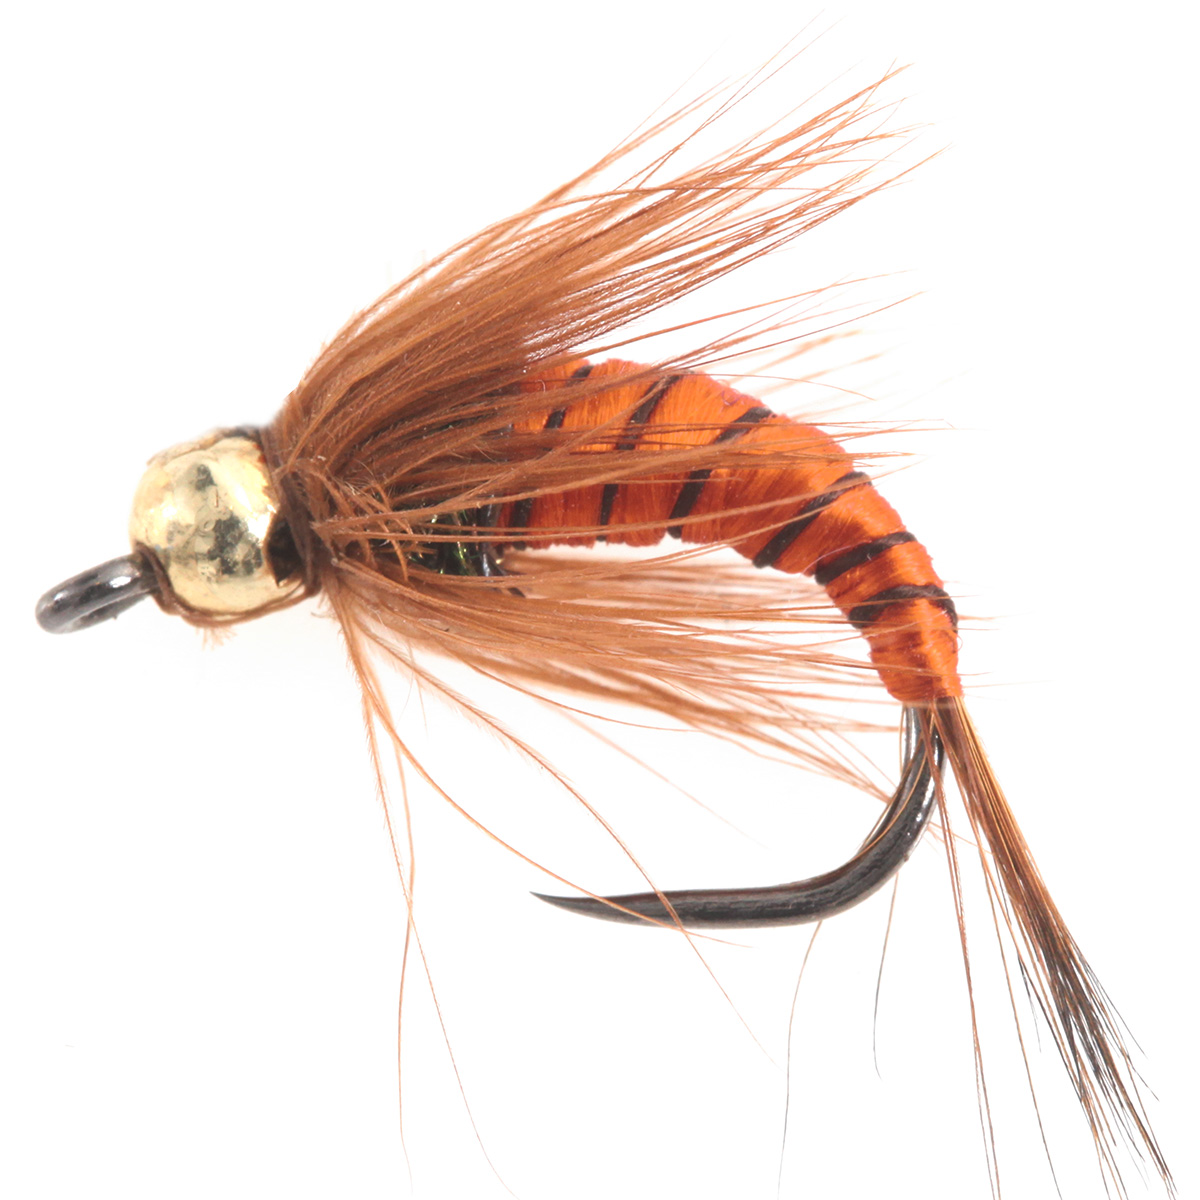 Tungsten BH PL Brown Body Nymph